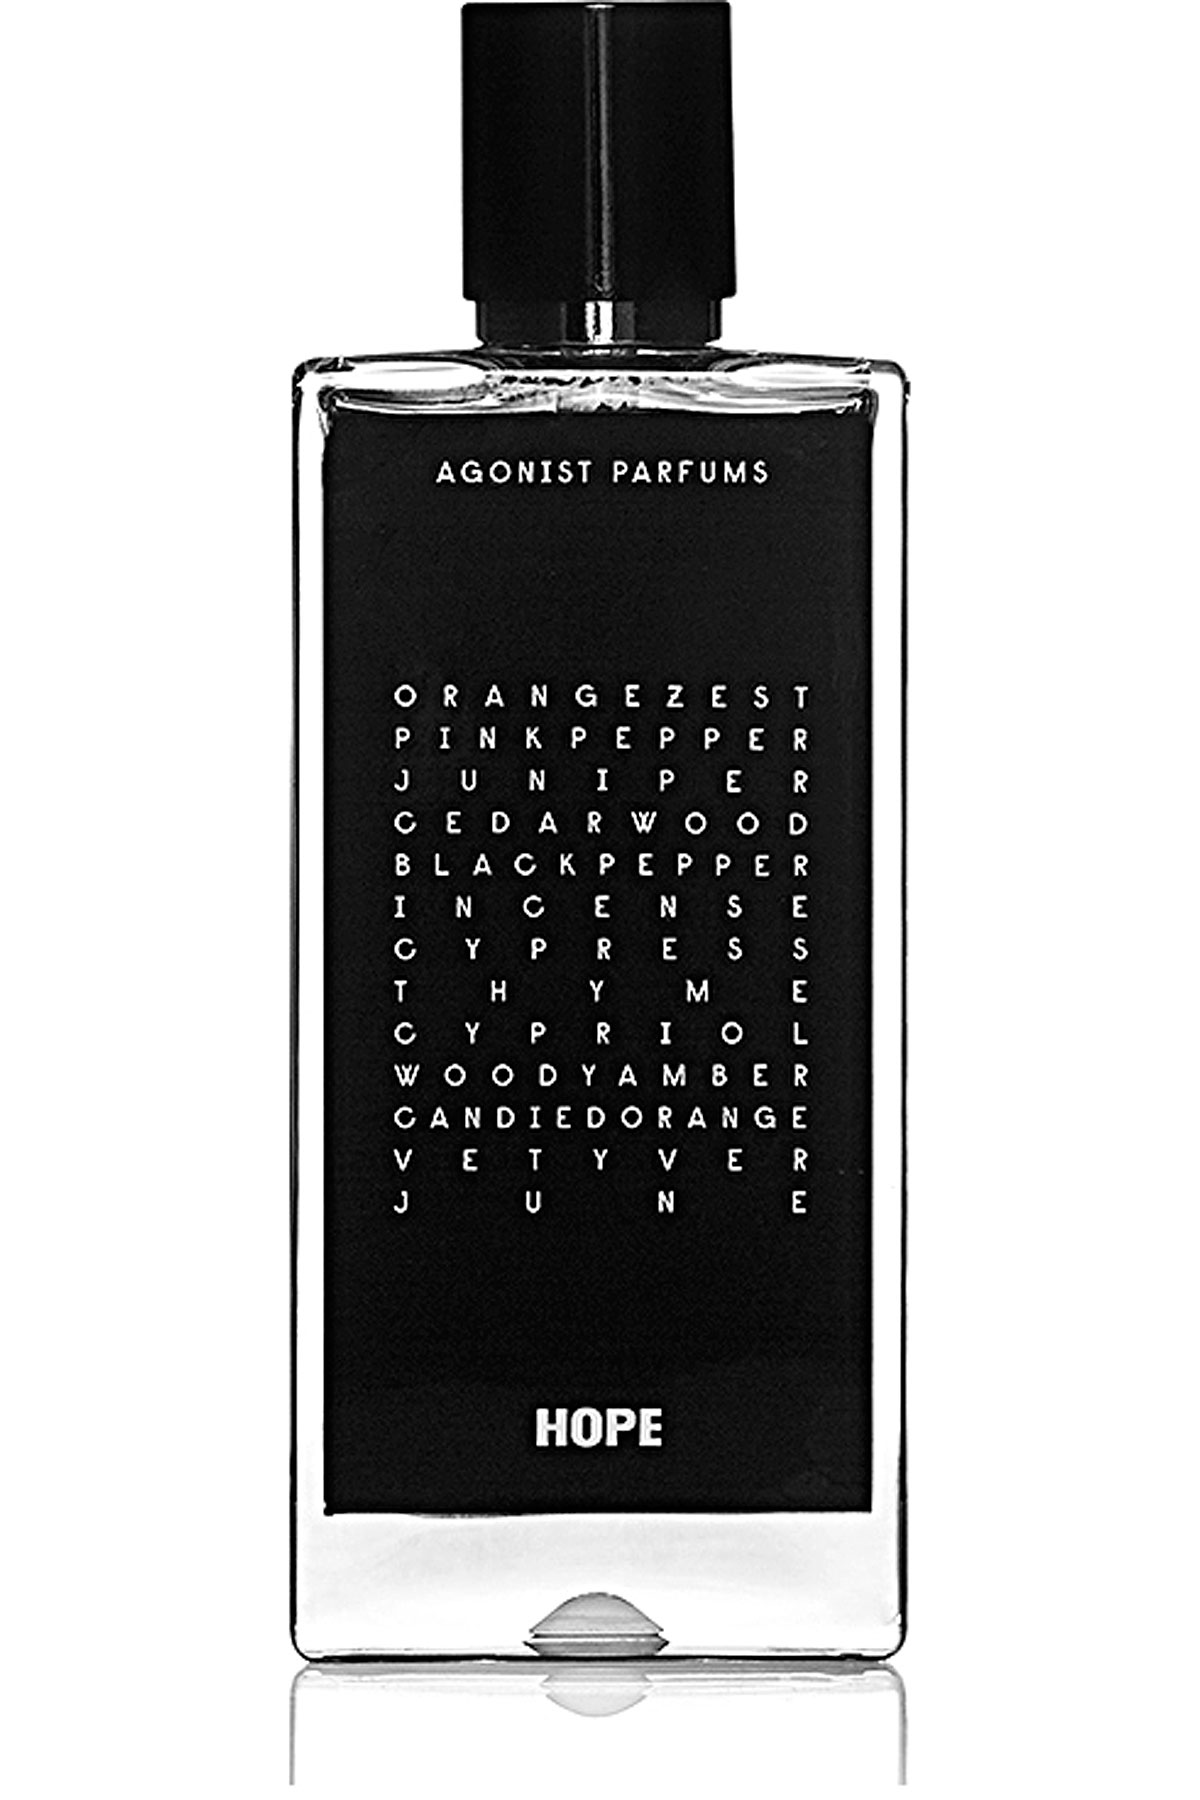 Agonist Fragrances for Men, Hope - Eau De Parfum - 50 Ml, 2019, 50 ml